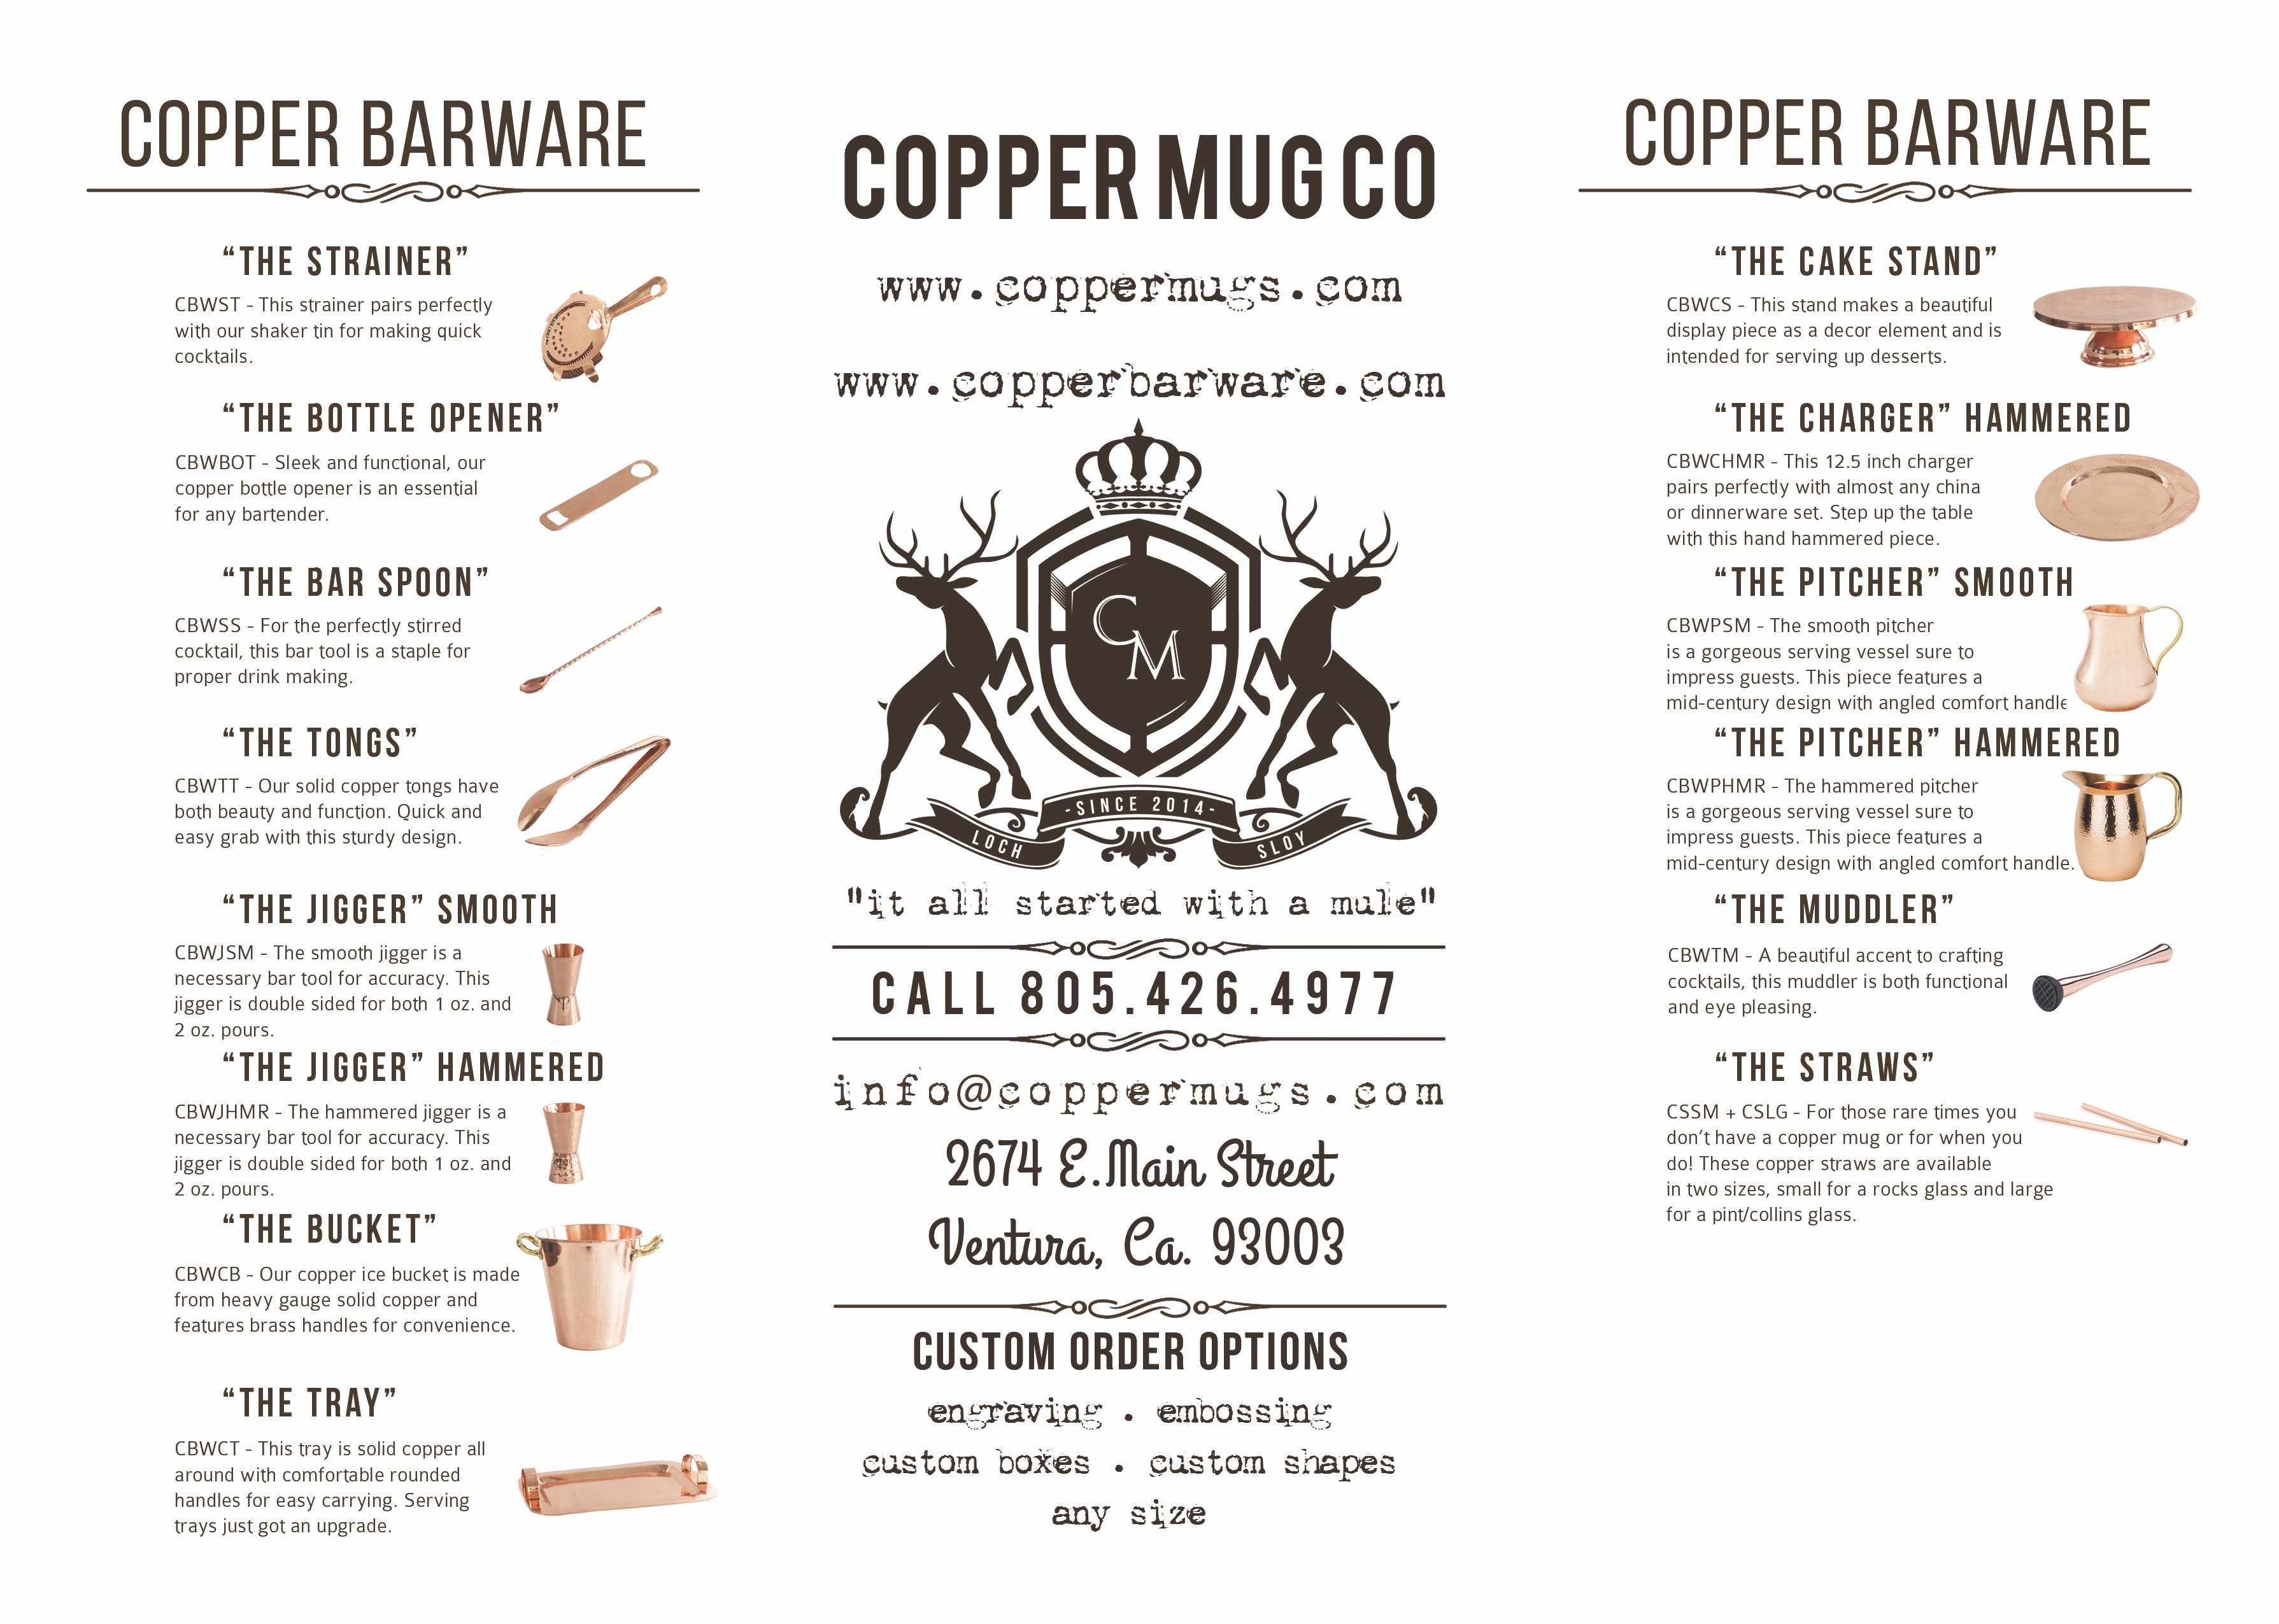 Product Brochure Copper mug sold by Copper Mug Co.